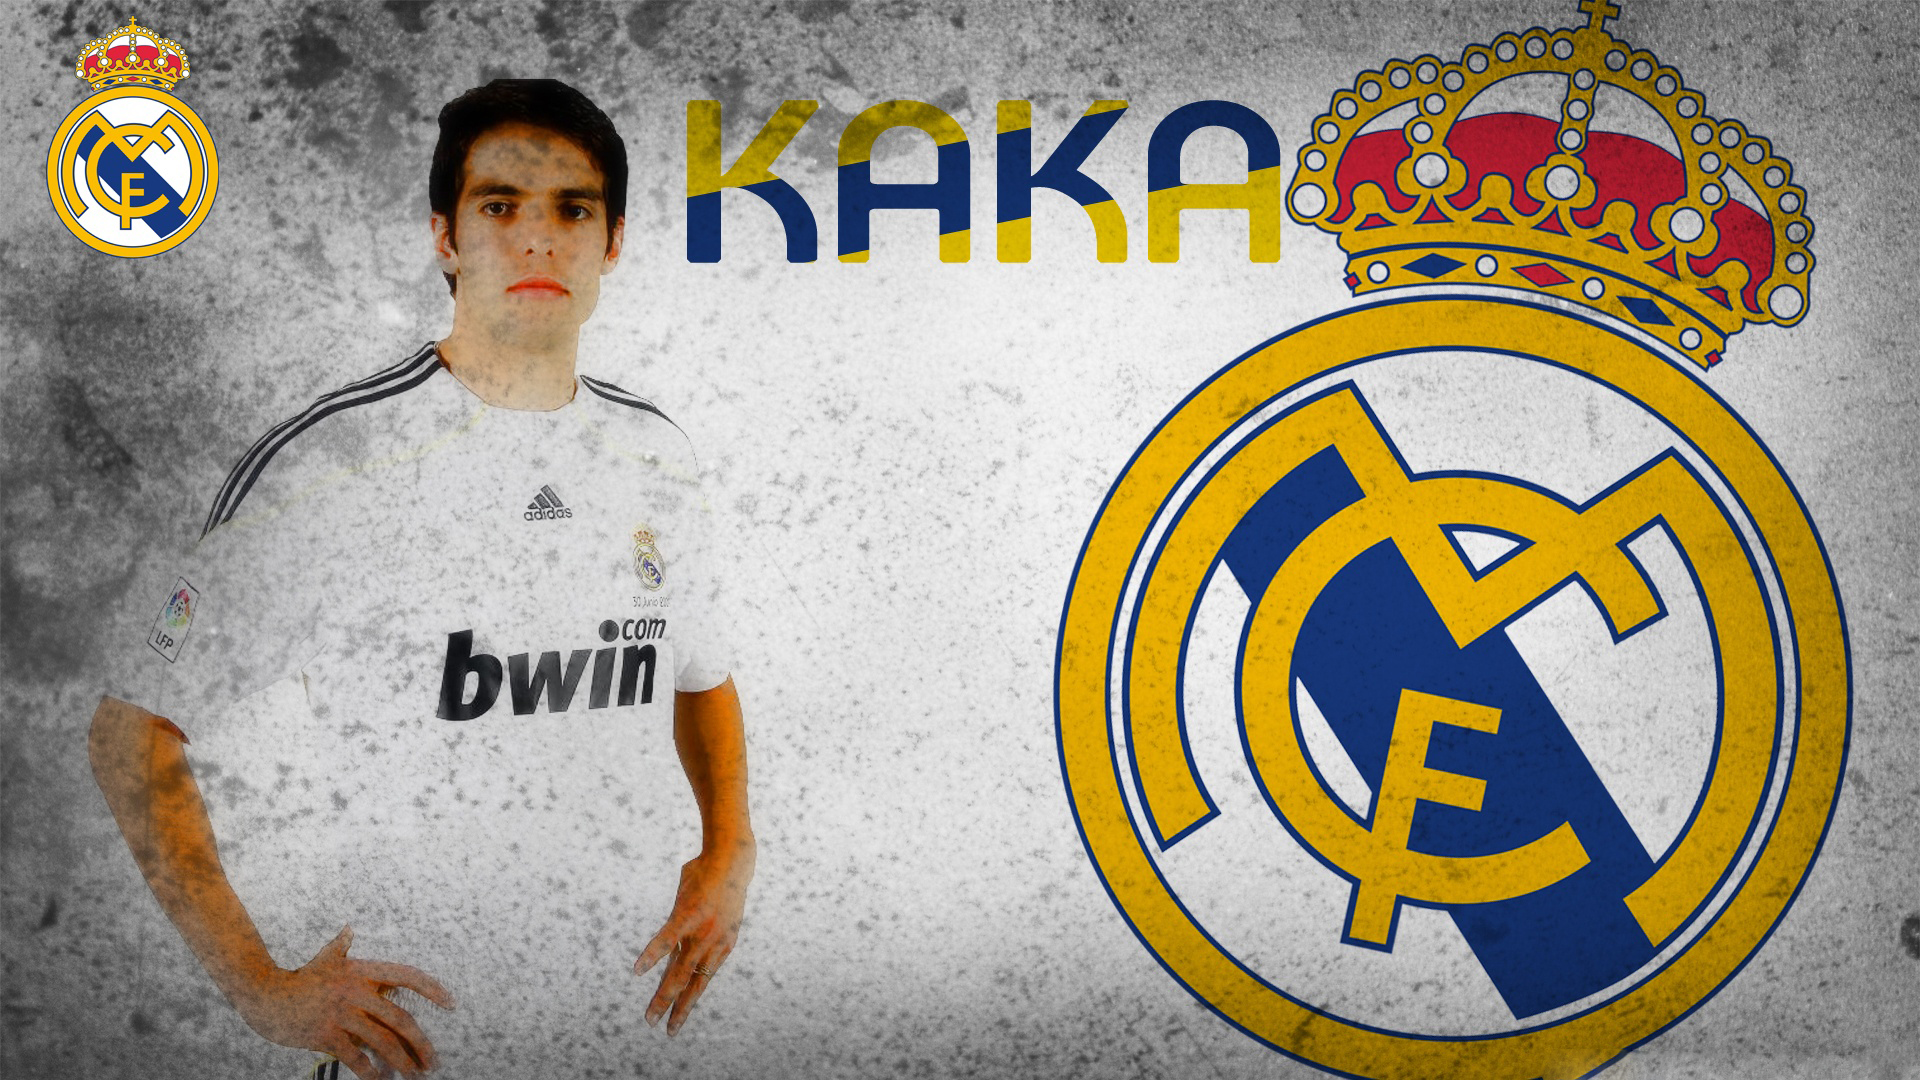 Real Madrid Kaka Wallpaper